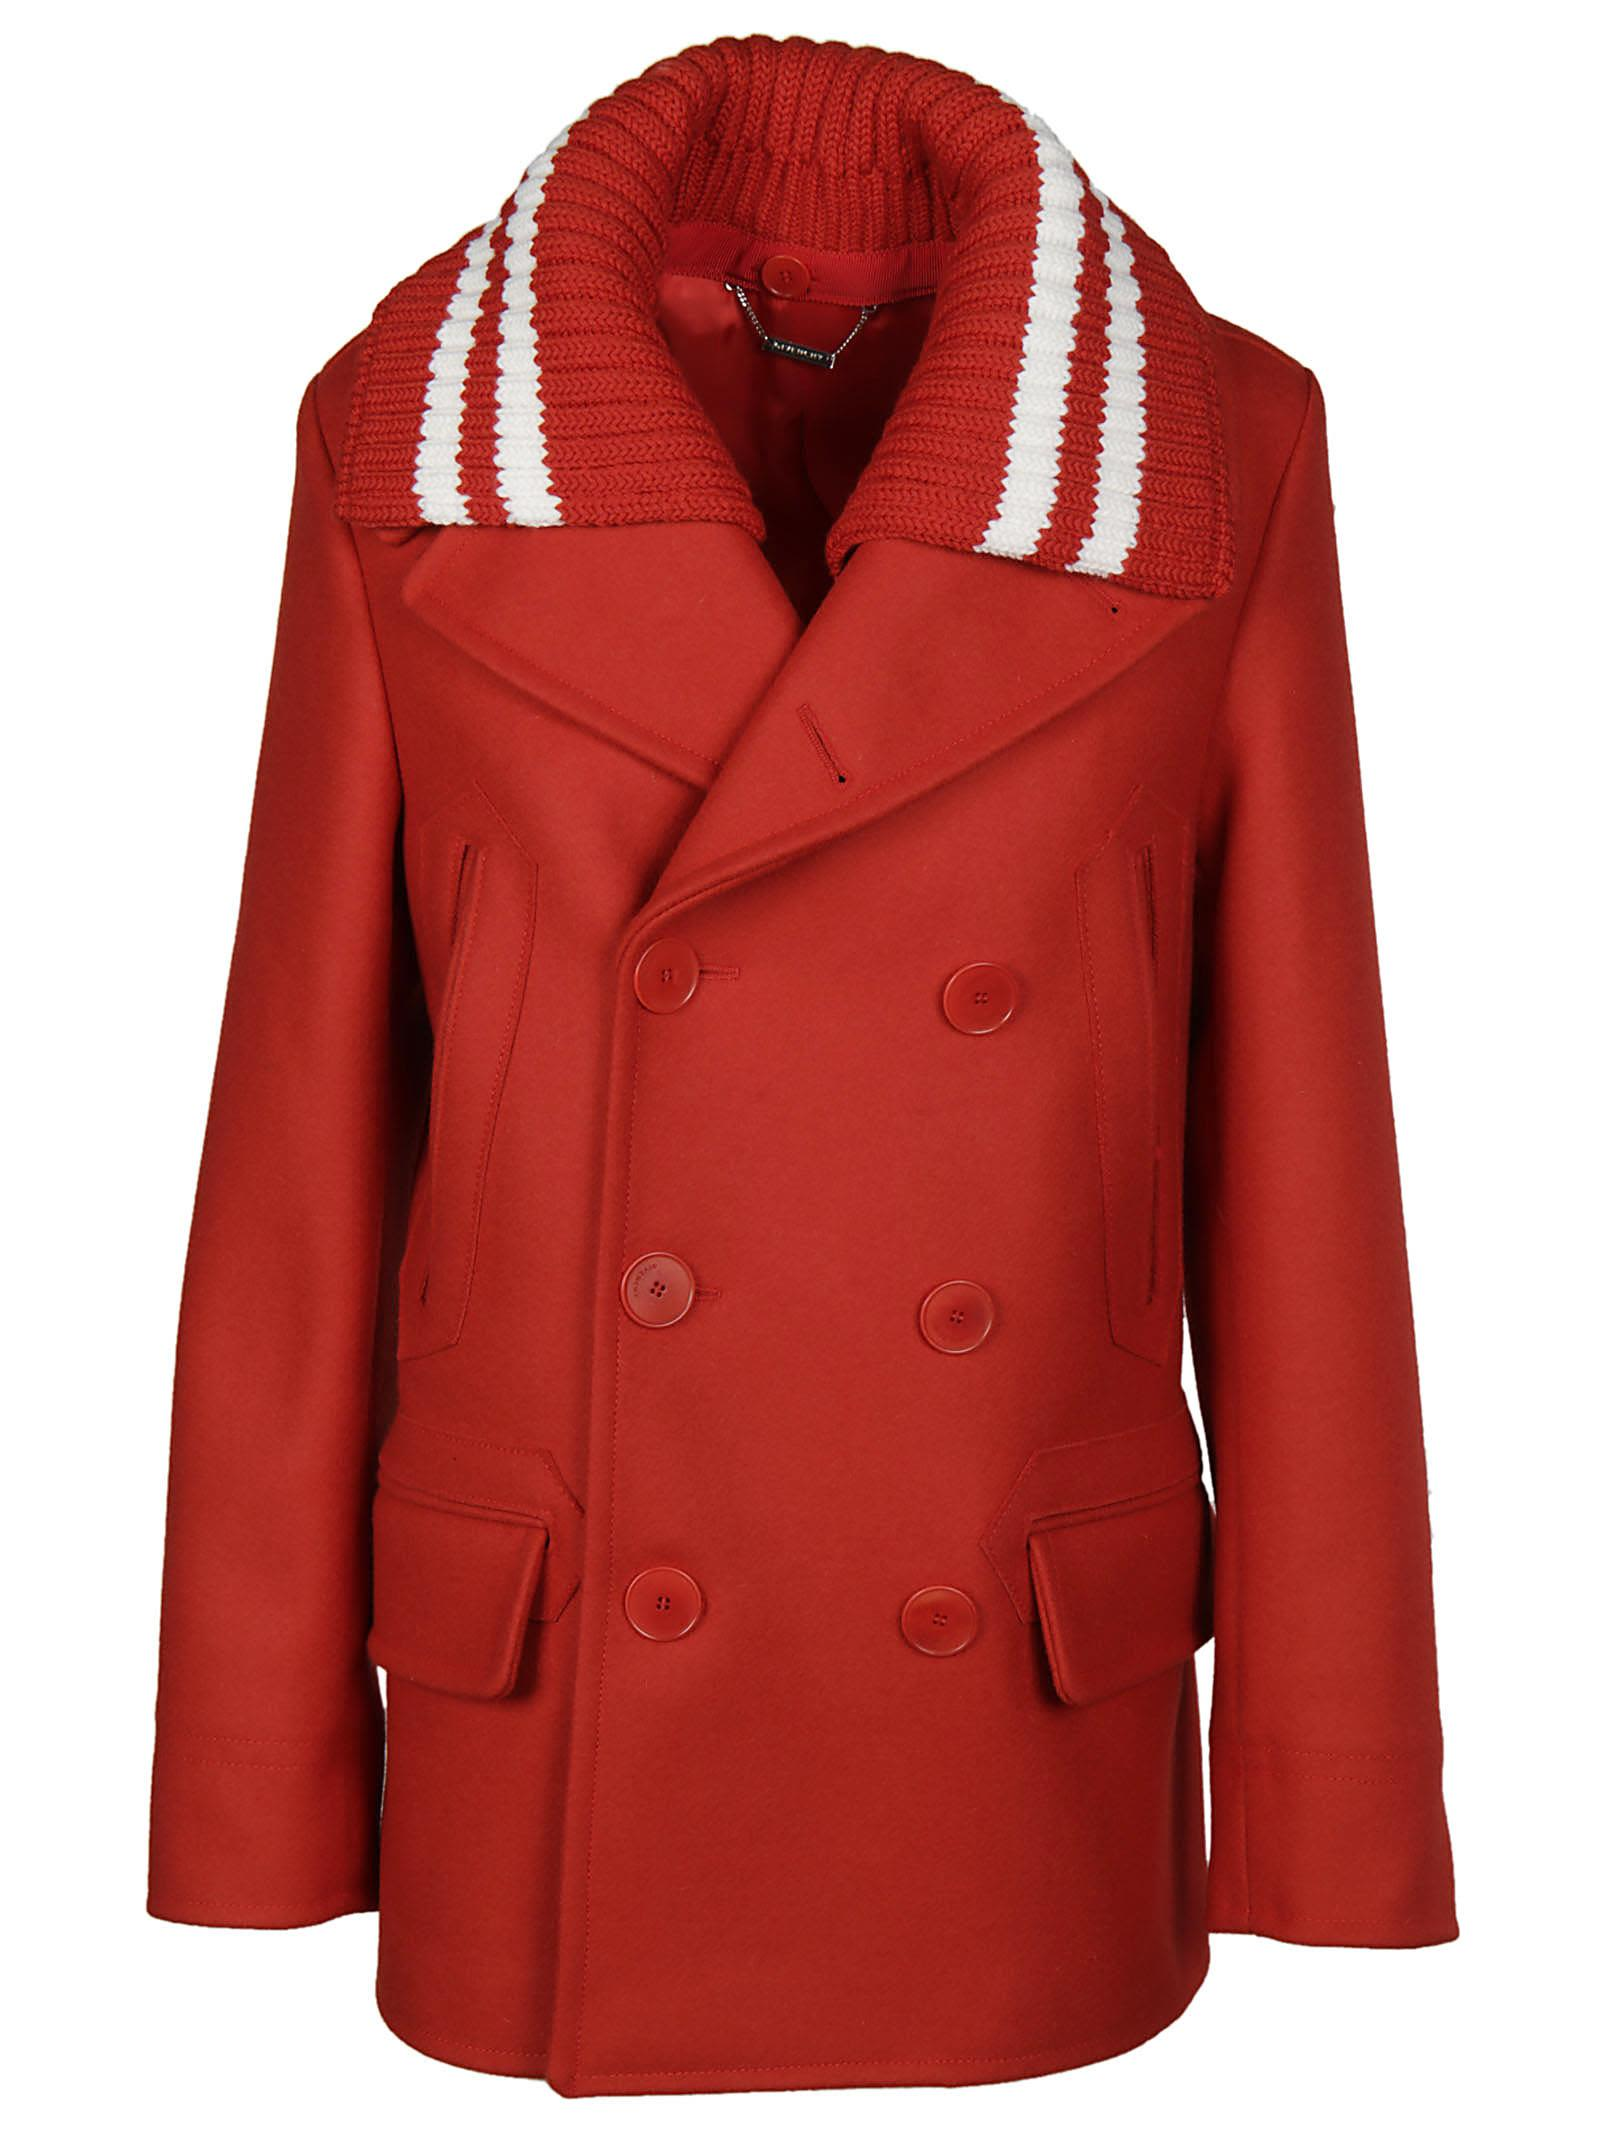 Givenchy Removable Collar Peacoat